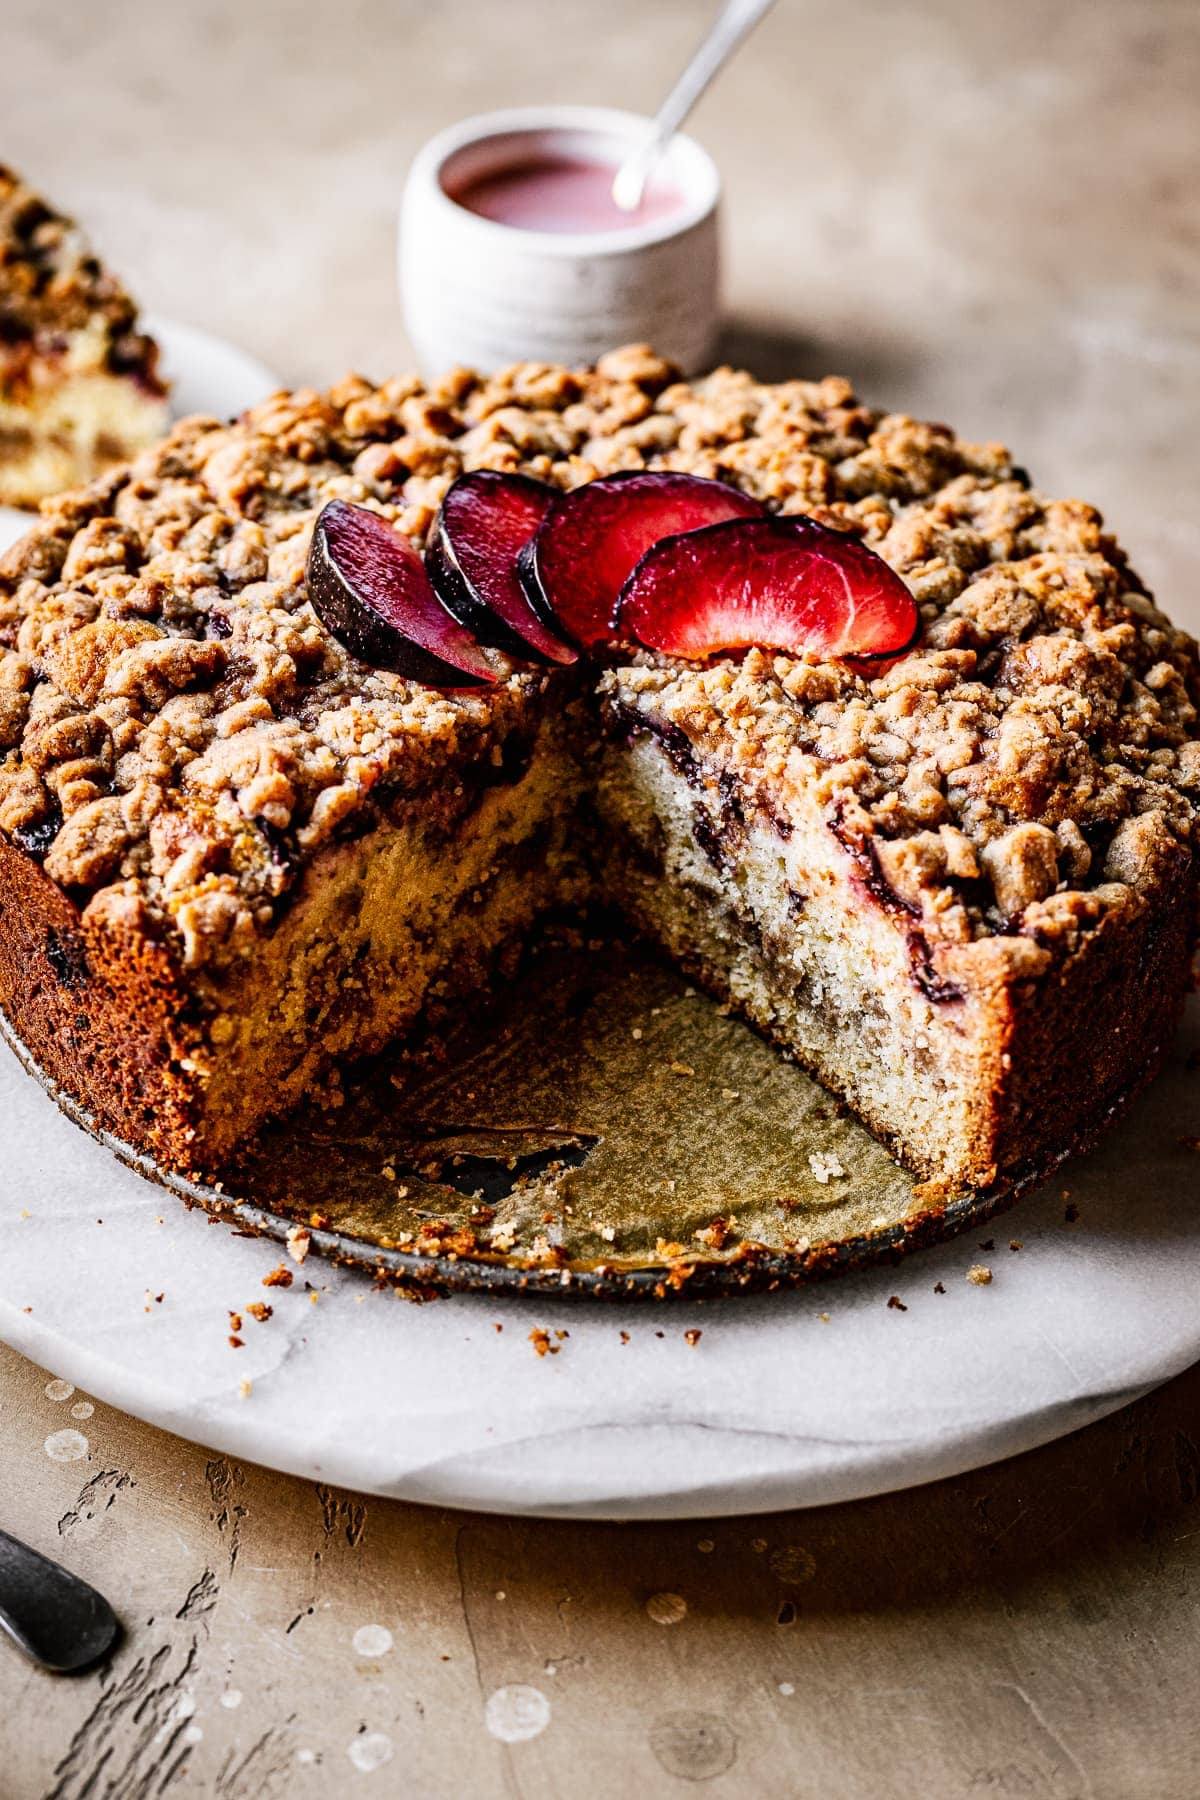 A round coffee cake with several slices cut out of it on a marble platter on a warm tan surface. There is a fan of sliced plums on top of the cake. In the background is a slice of cake and a white ceramic container of pink glaze.